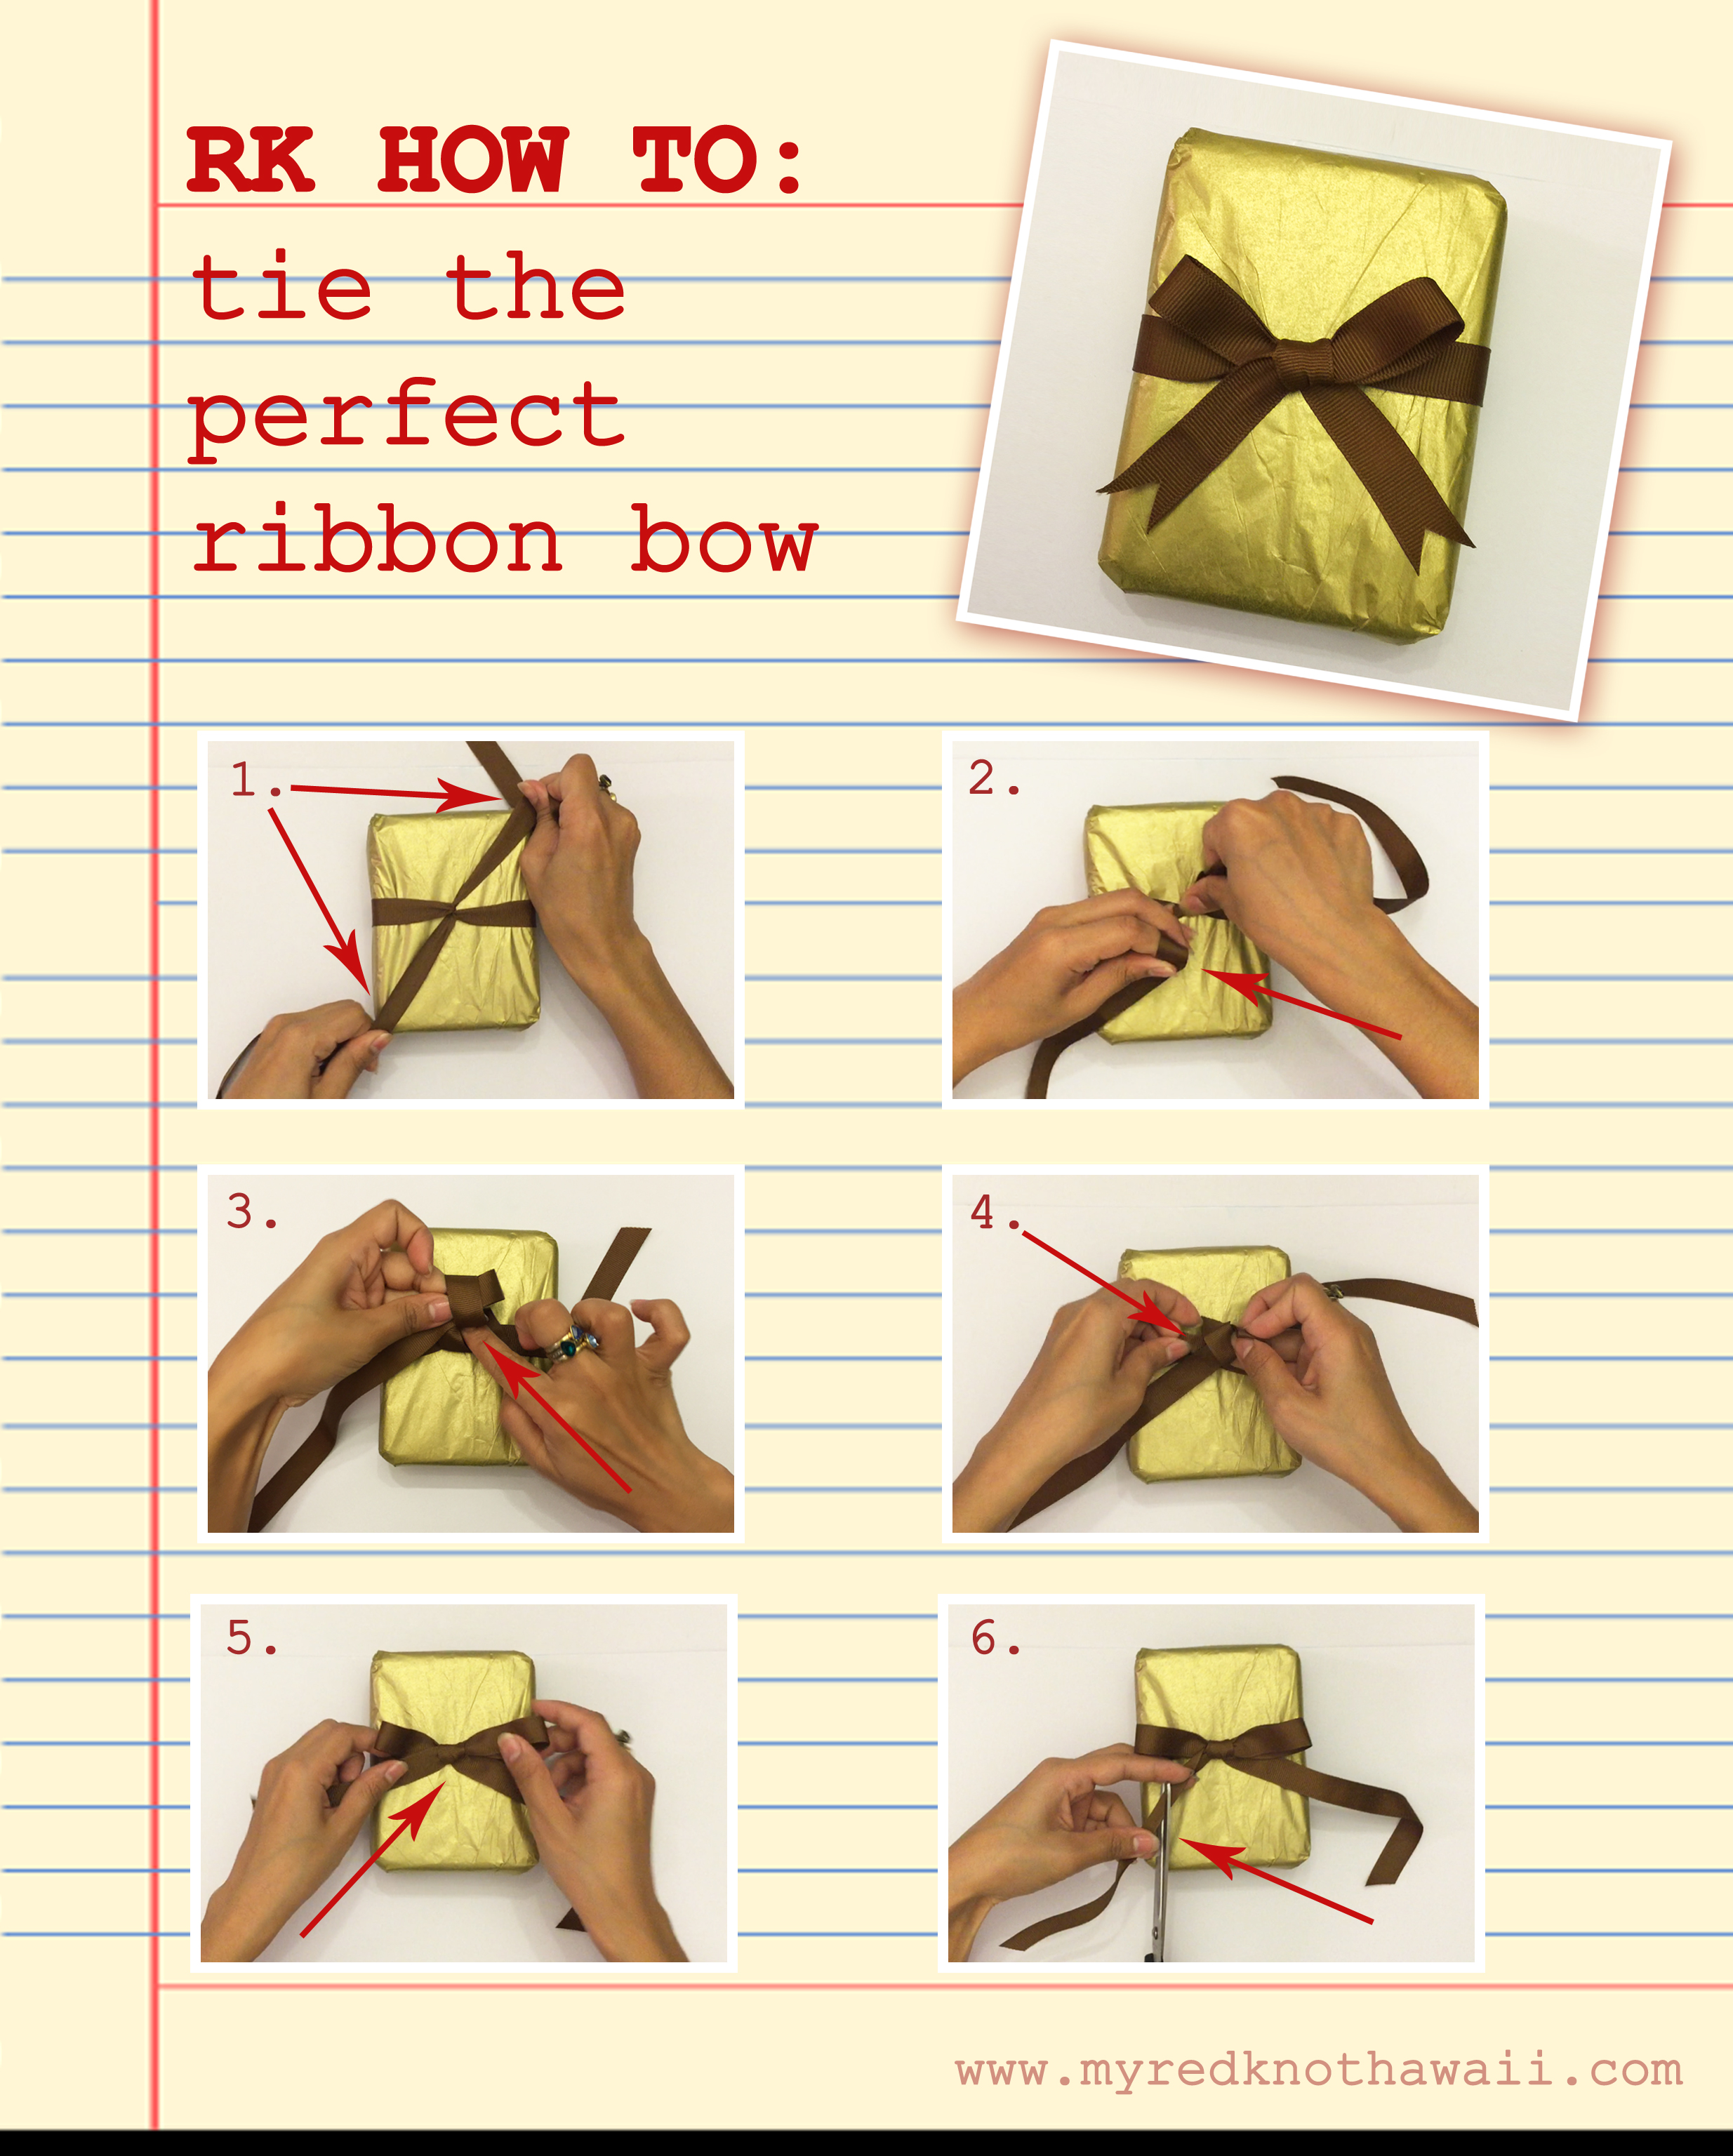 How to tie the perfect knot